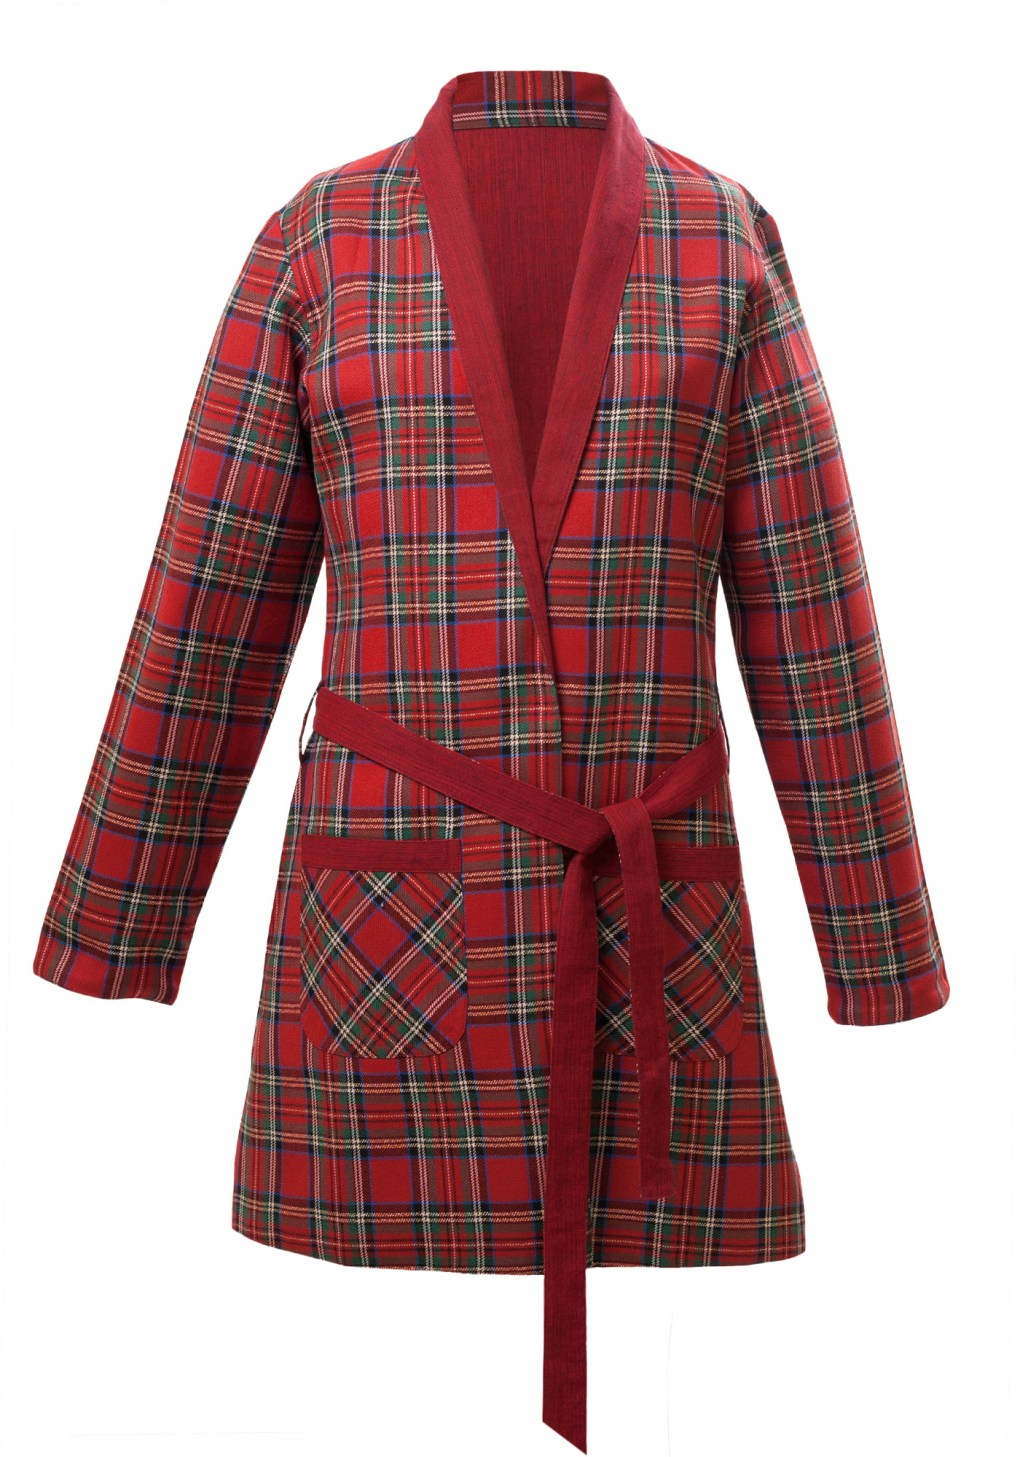 MINC Petite Girls Reversible Dressing Jacket in Red Checked Cotton